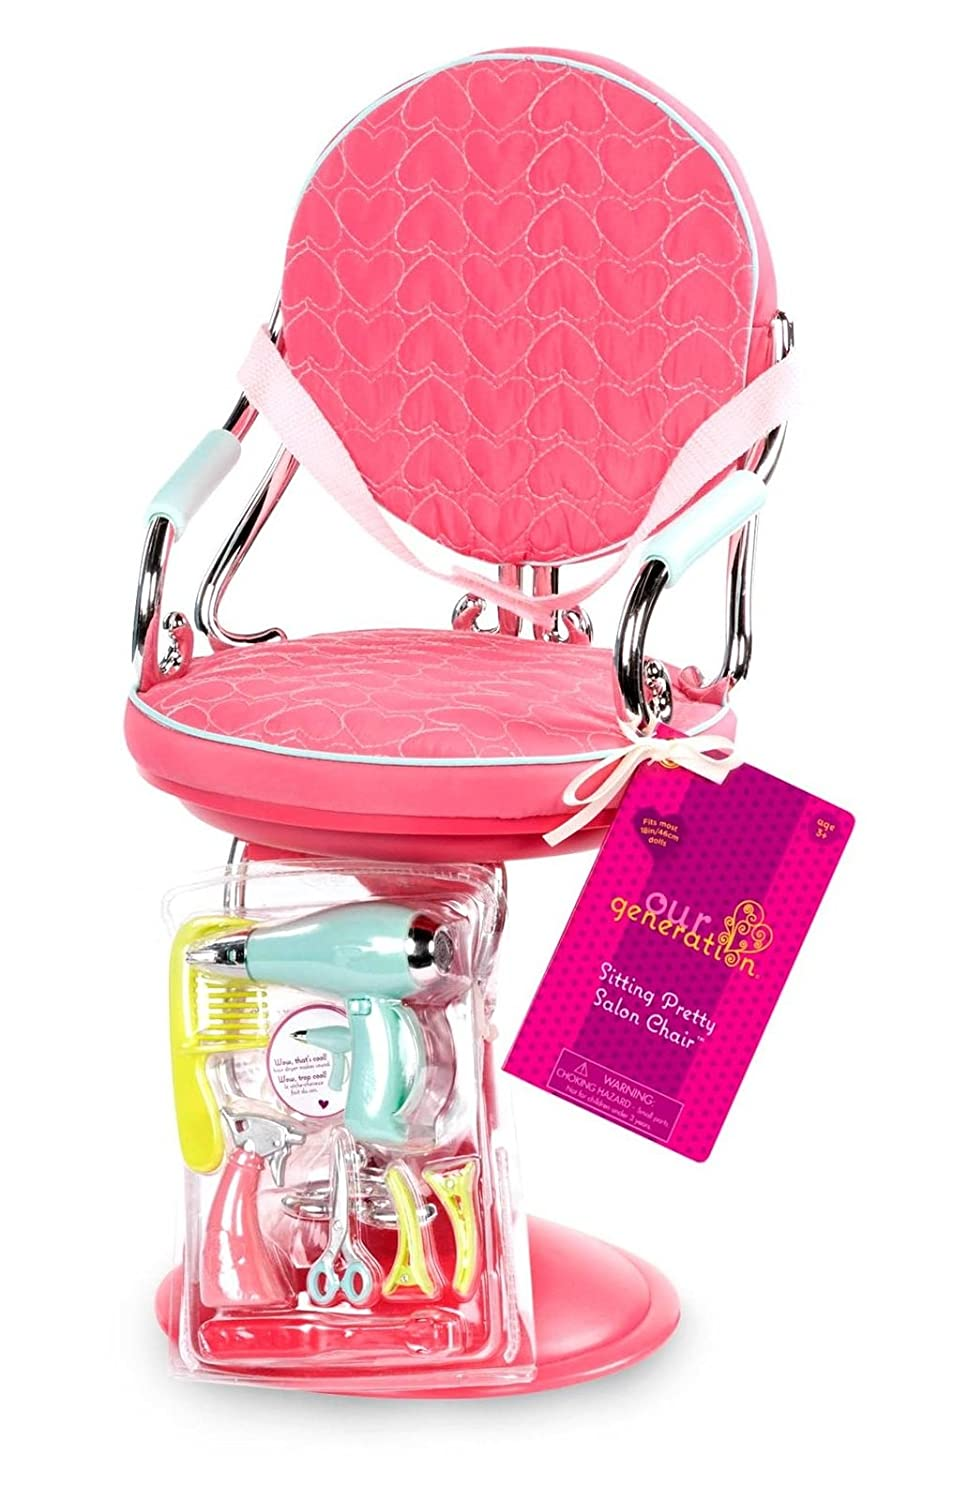 /OG Dressing Chair with Pink Hearts Our Generation BD37336/